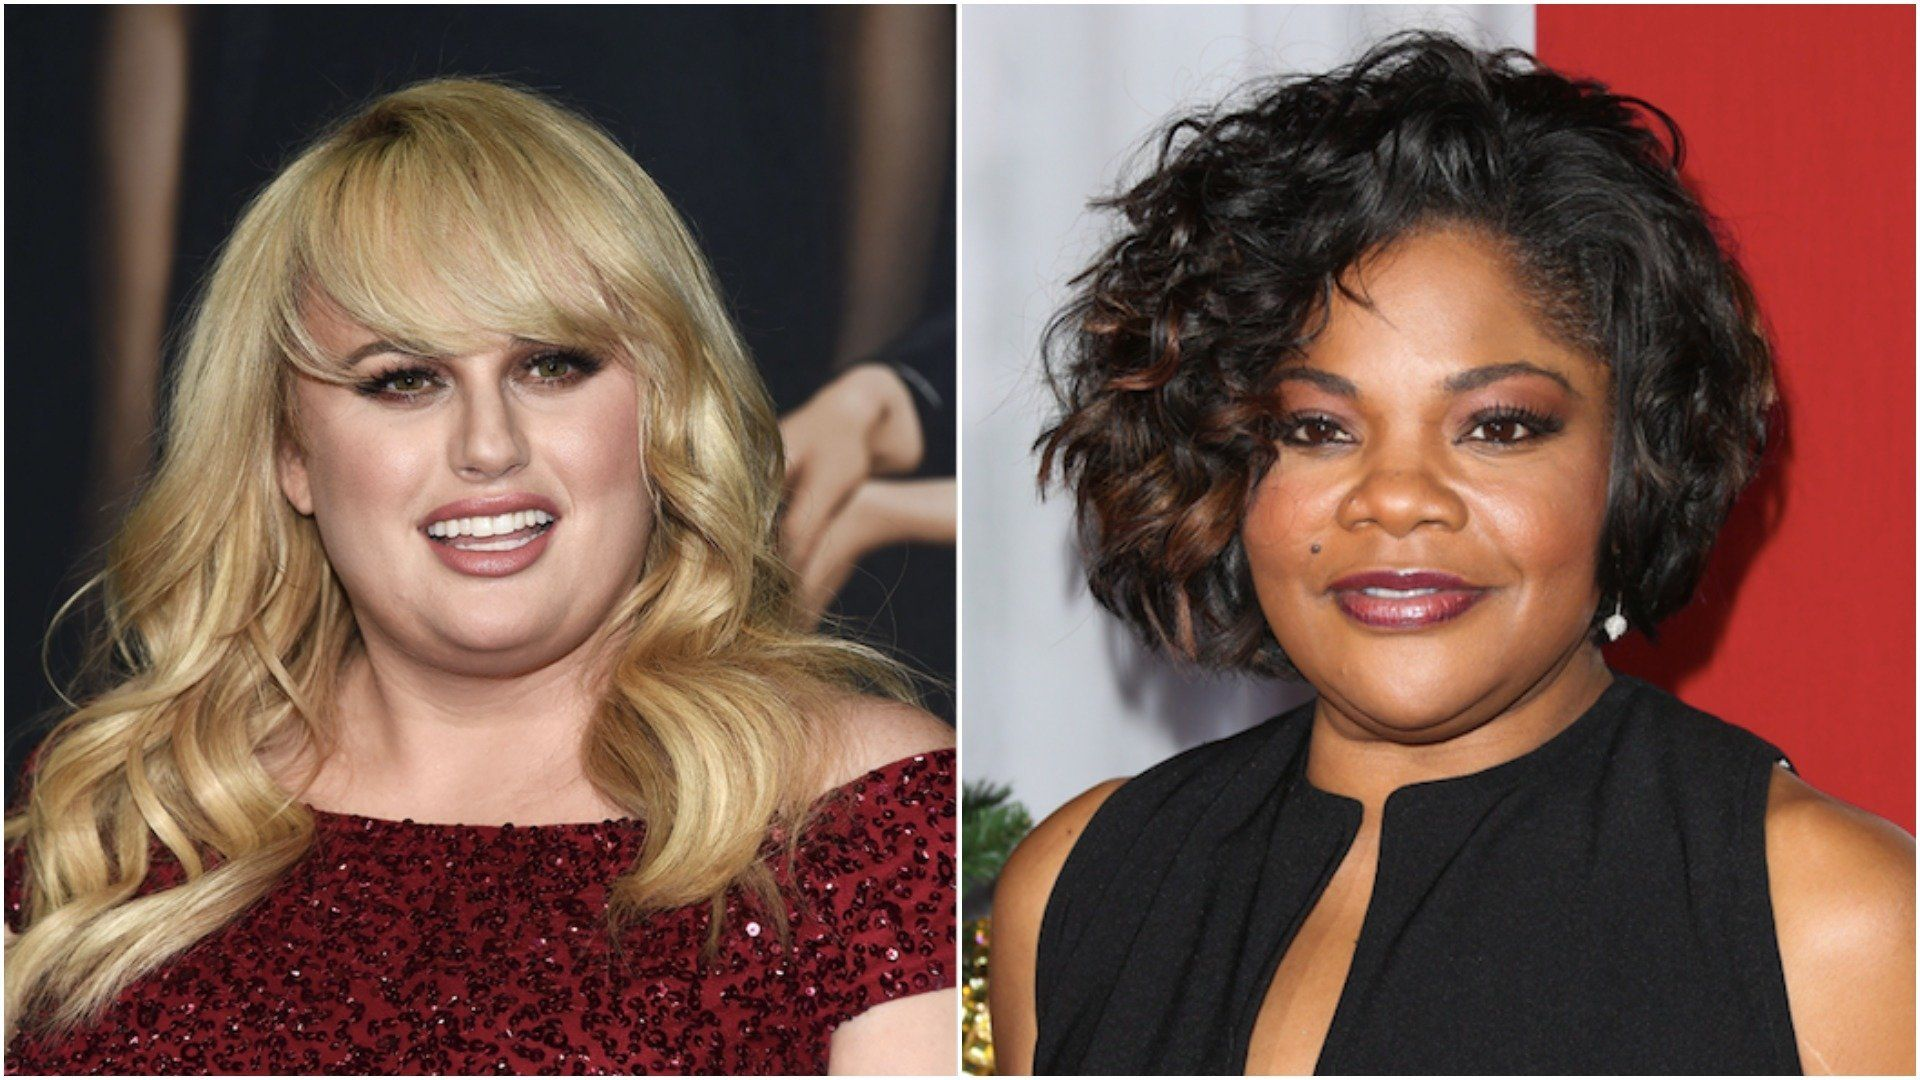 Rebel Wilson (left) sparked controversy last week when she claimed to be the first-ever plus-size star of a romantic comedy.